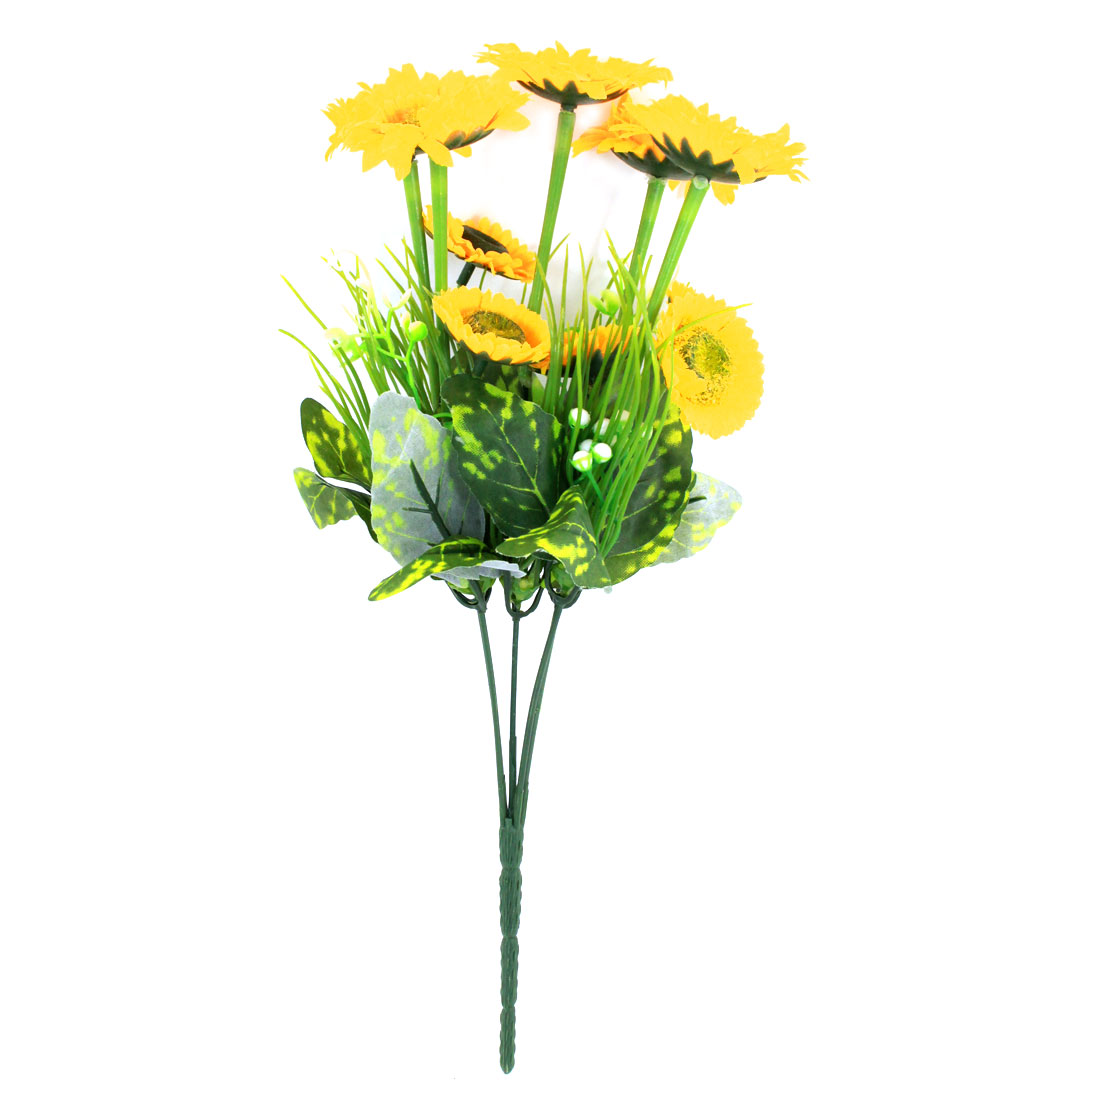 Living Room Decorative Simulation Plastic Mum Flower Bouquet Yellow